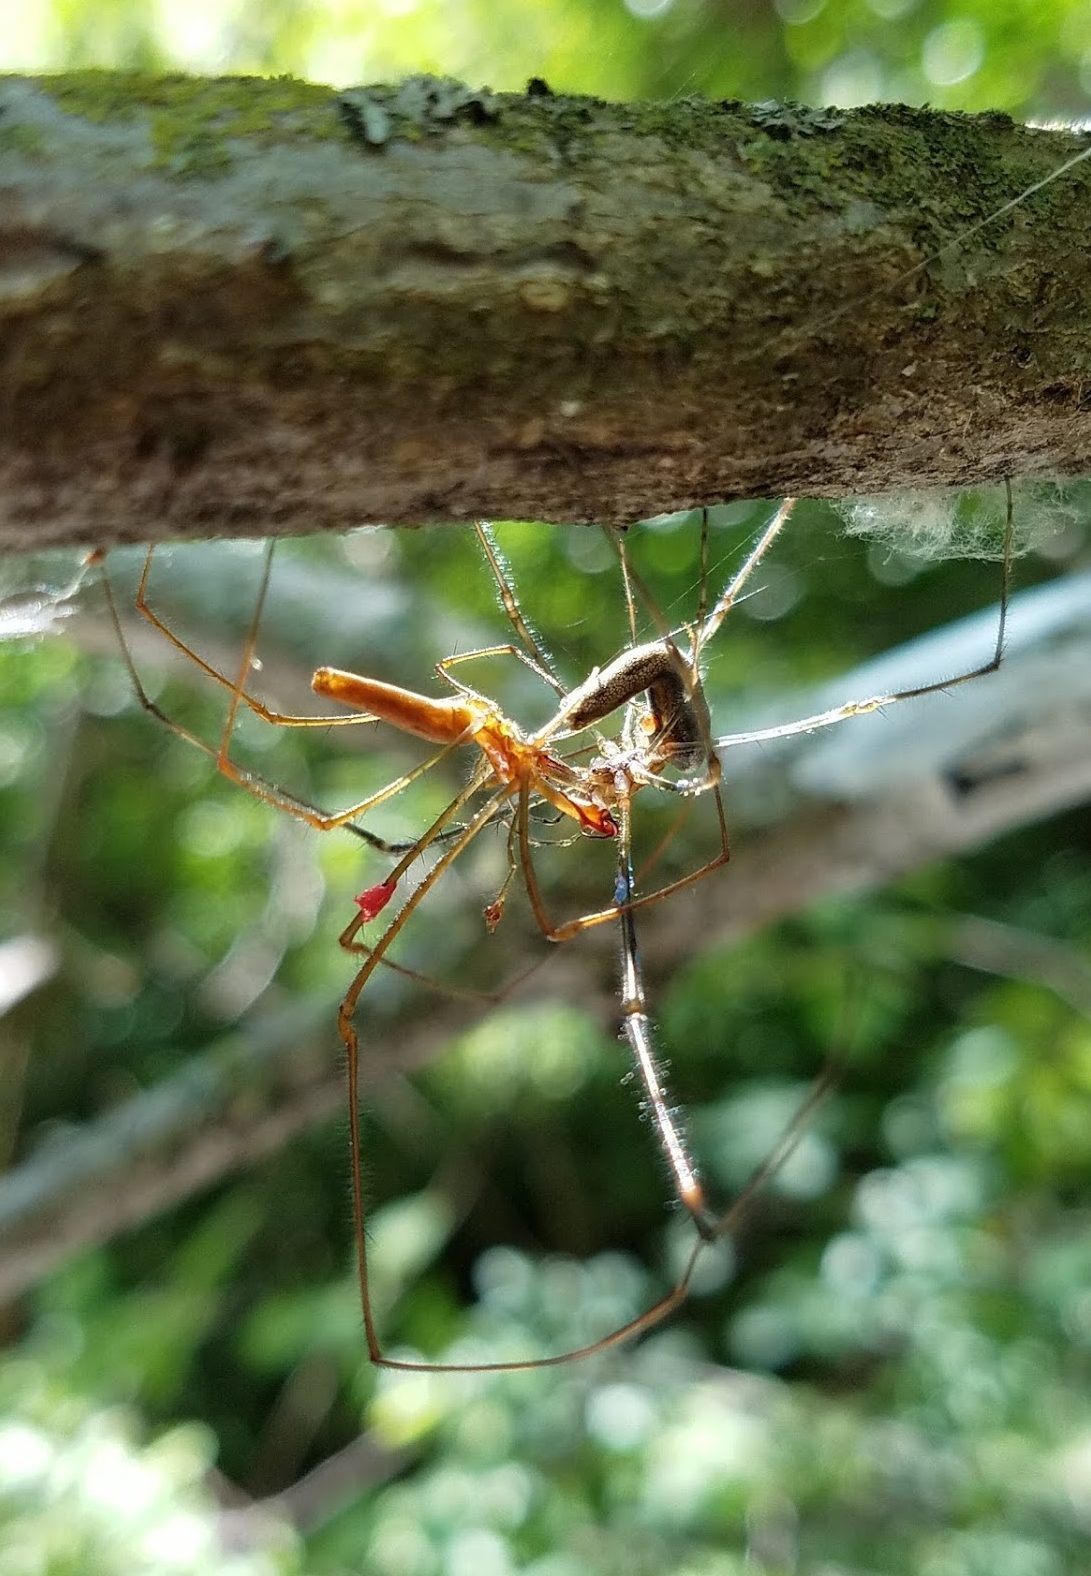 Tetragnatha spiders mating